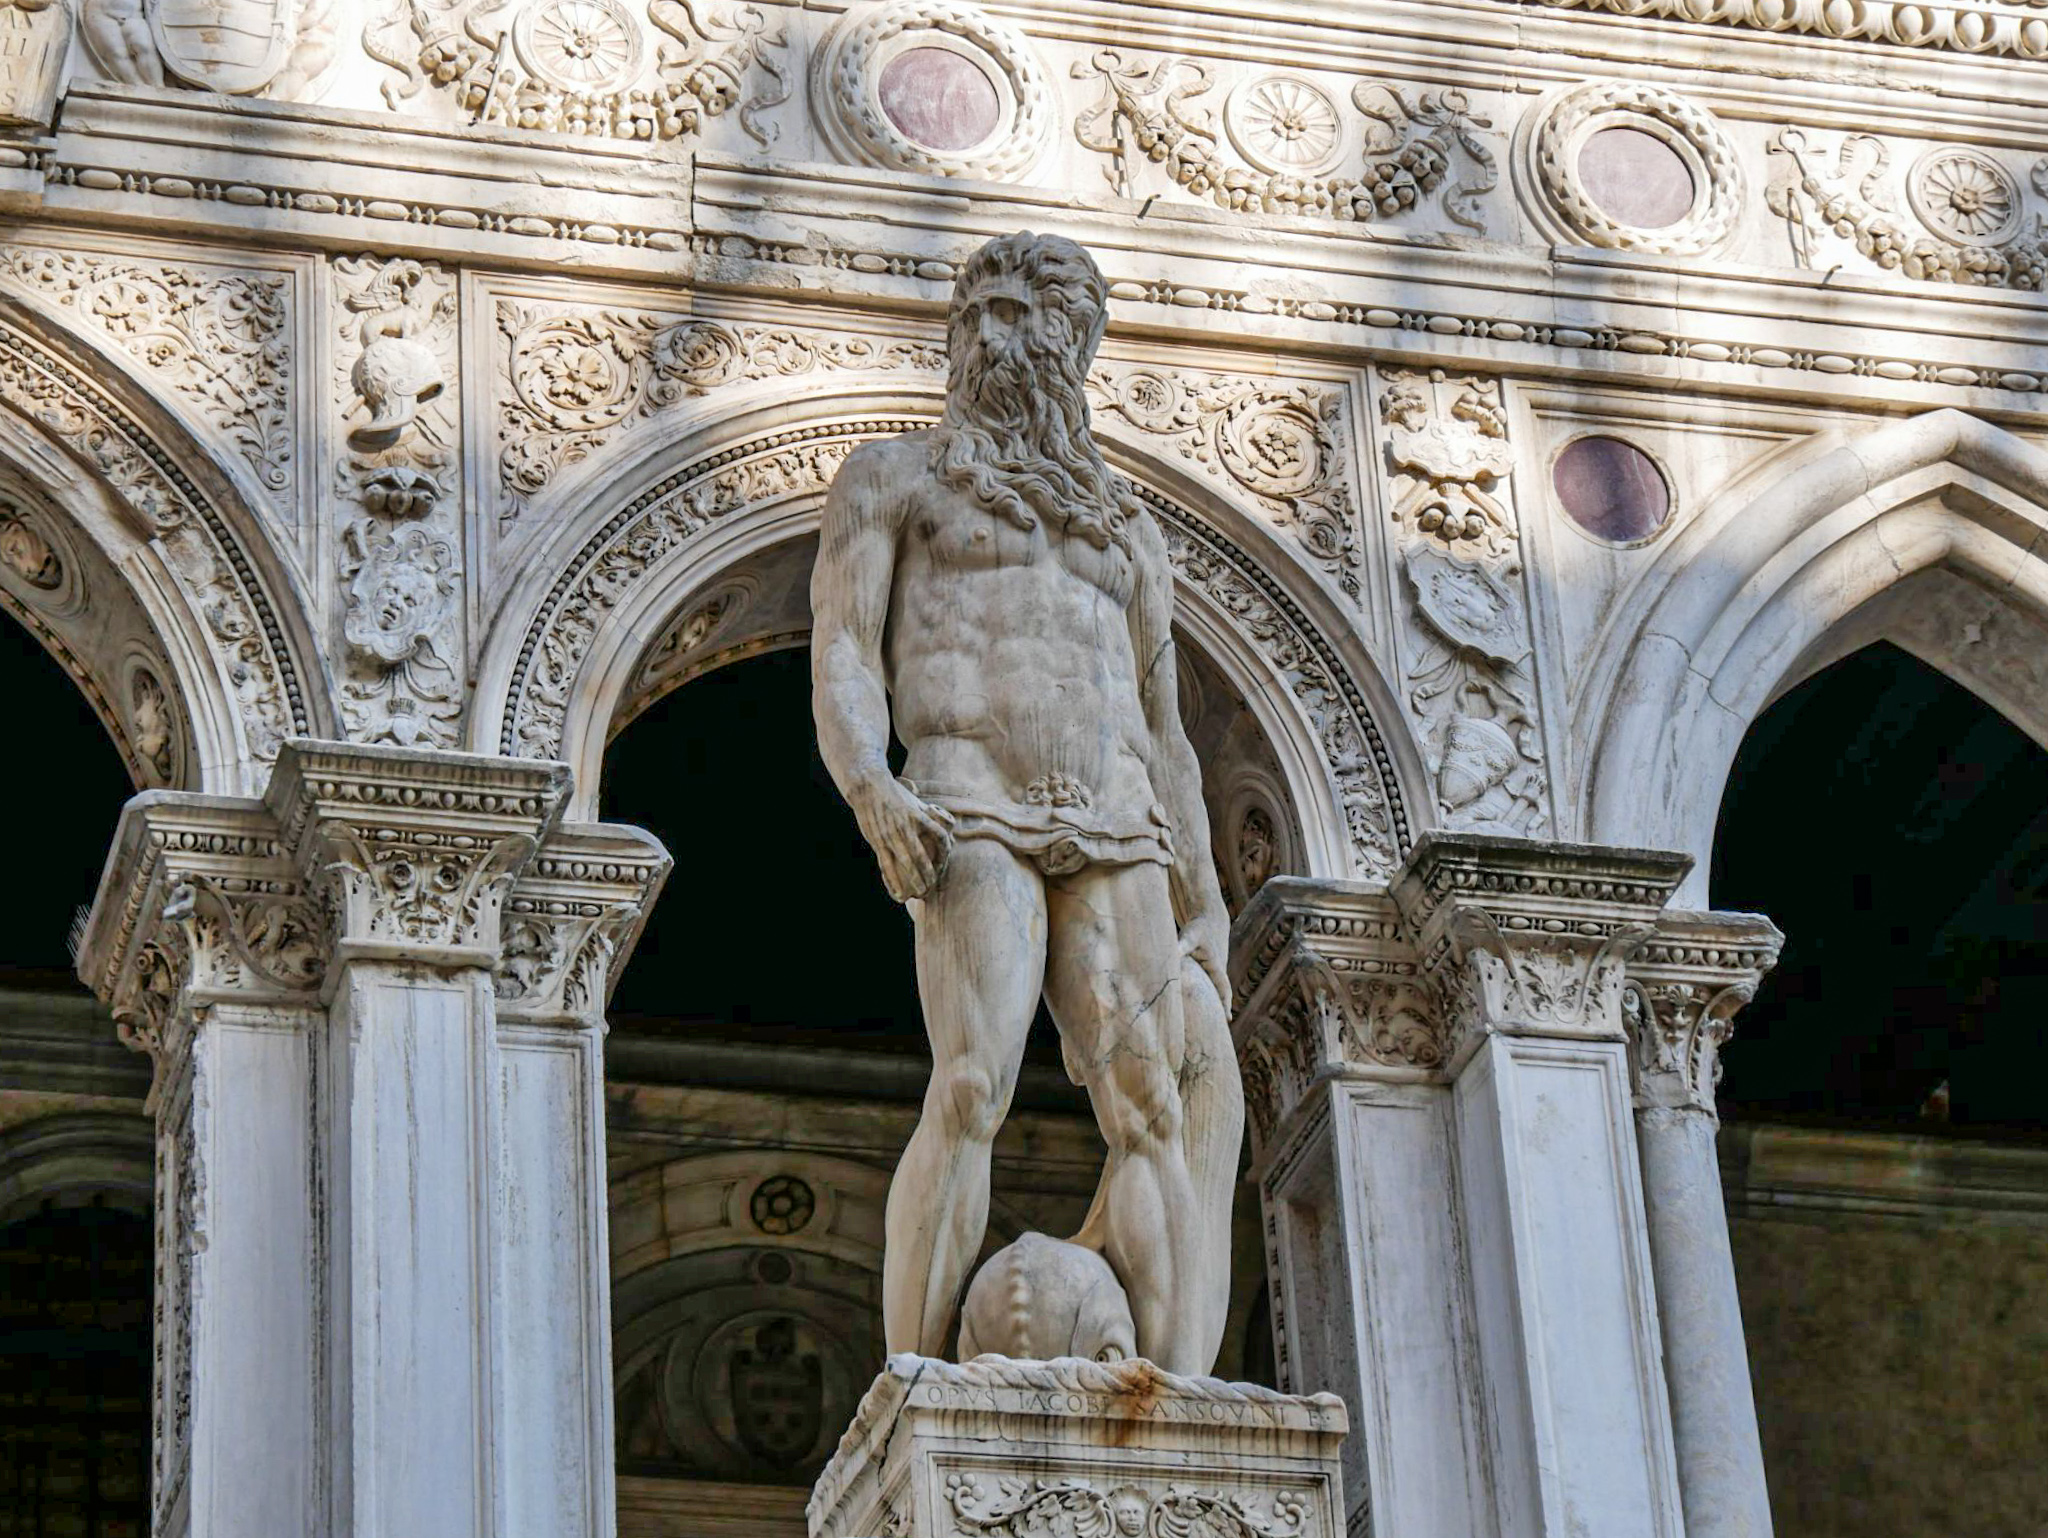 Statue of Neptune - Giants' Staircase in the Doge's Palace in Venice